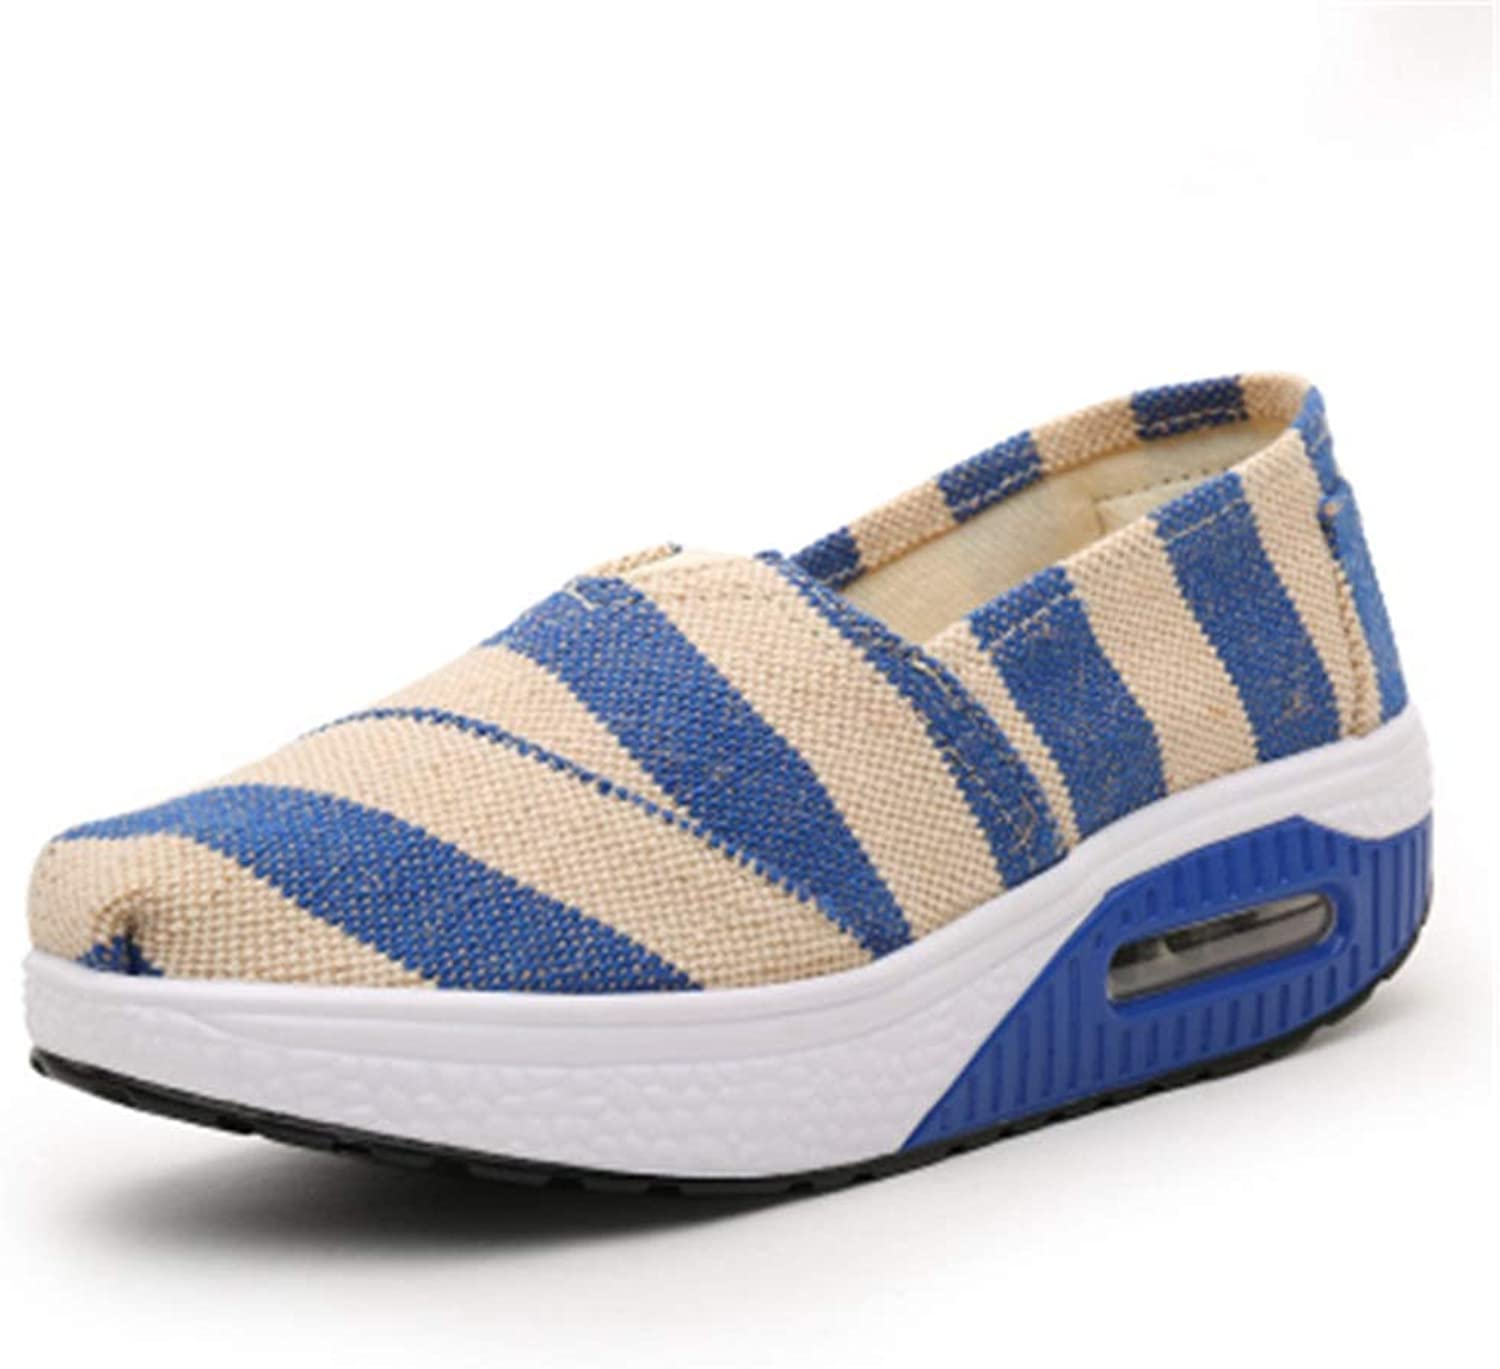 Women's Striped Casual Canvas Breathable Fabric Platform Wedges Sneaker Female Fashion Leisure Slip On Loafers